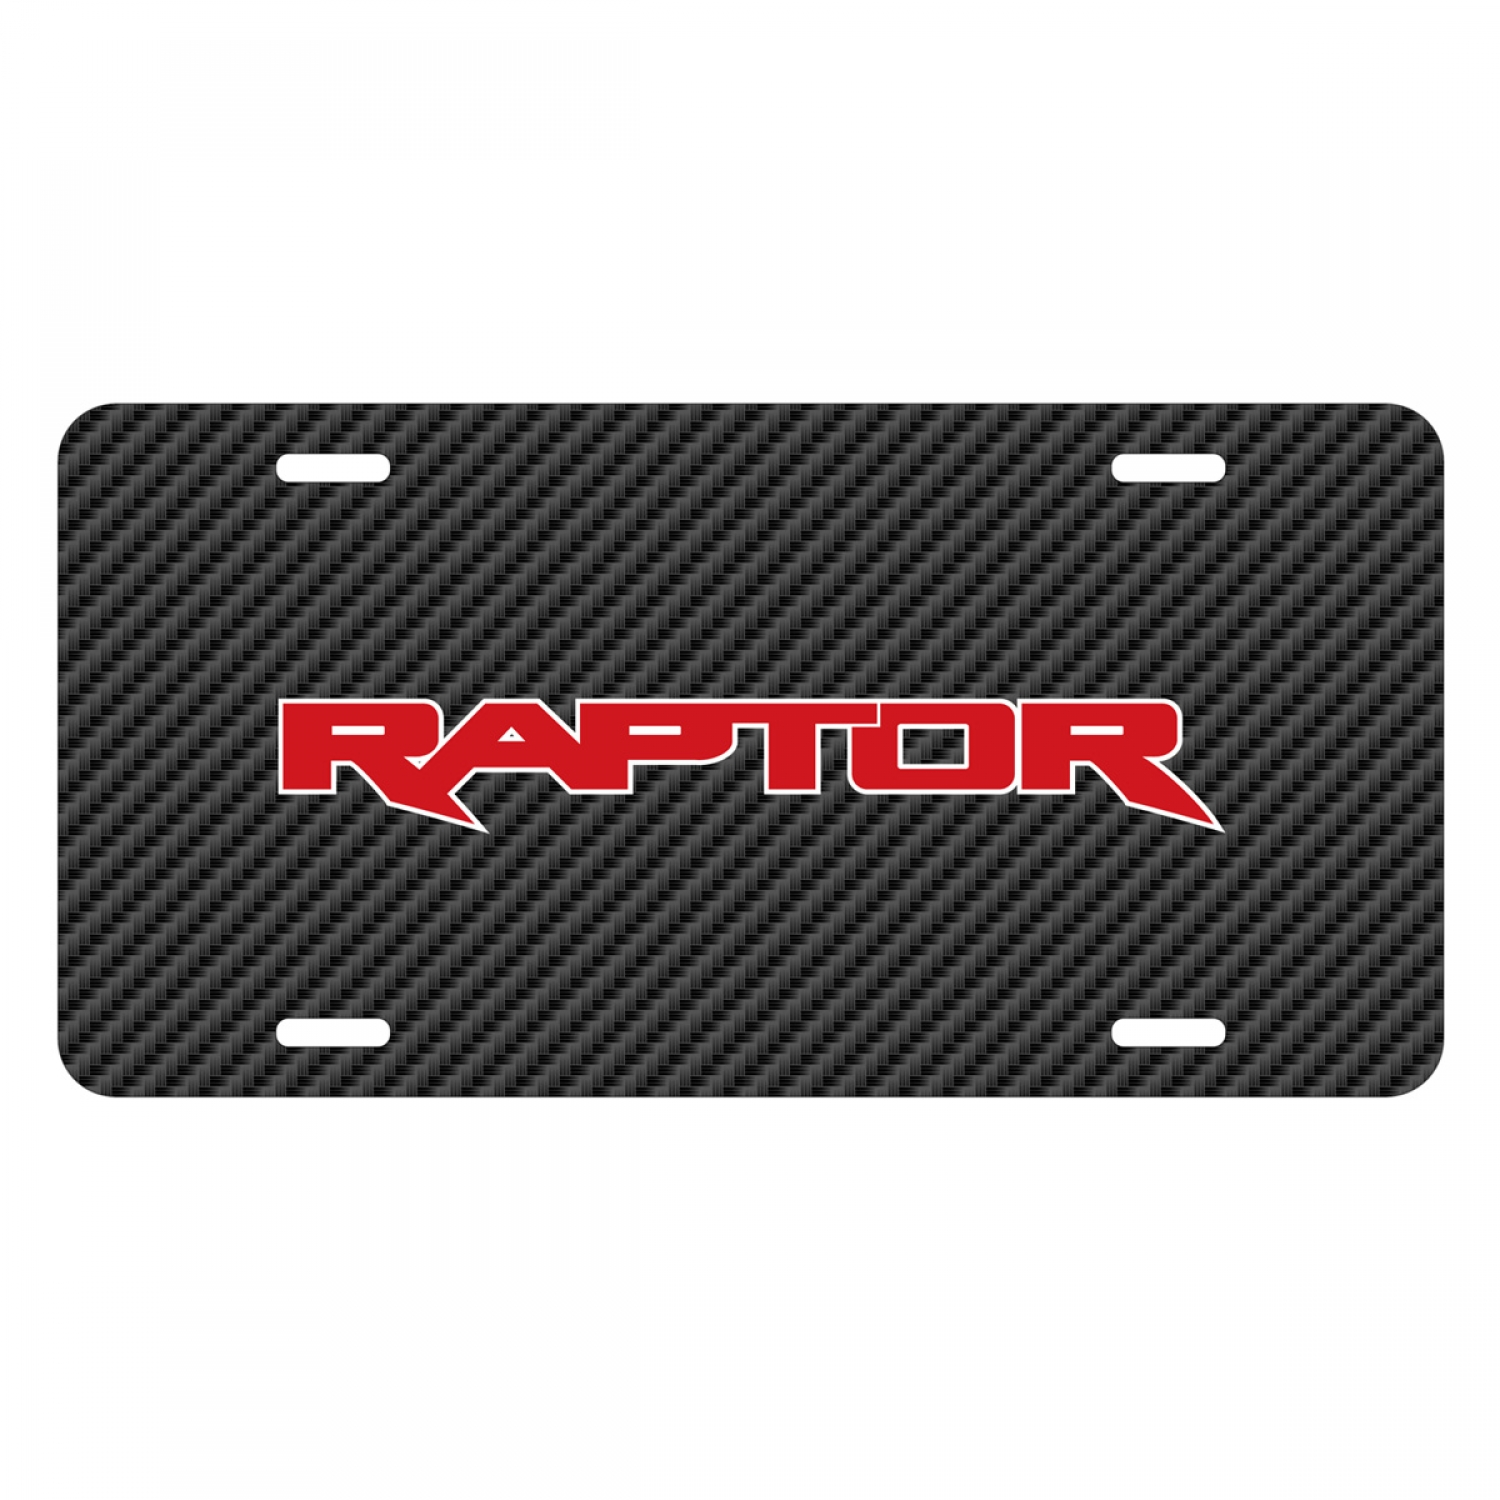 Ford F-150 Raptor 2017 in Red Black Carbon Fiber Texture Graphic UV Metal License Plate